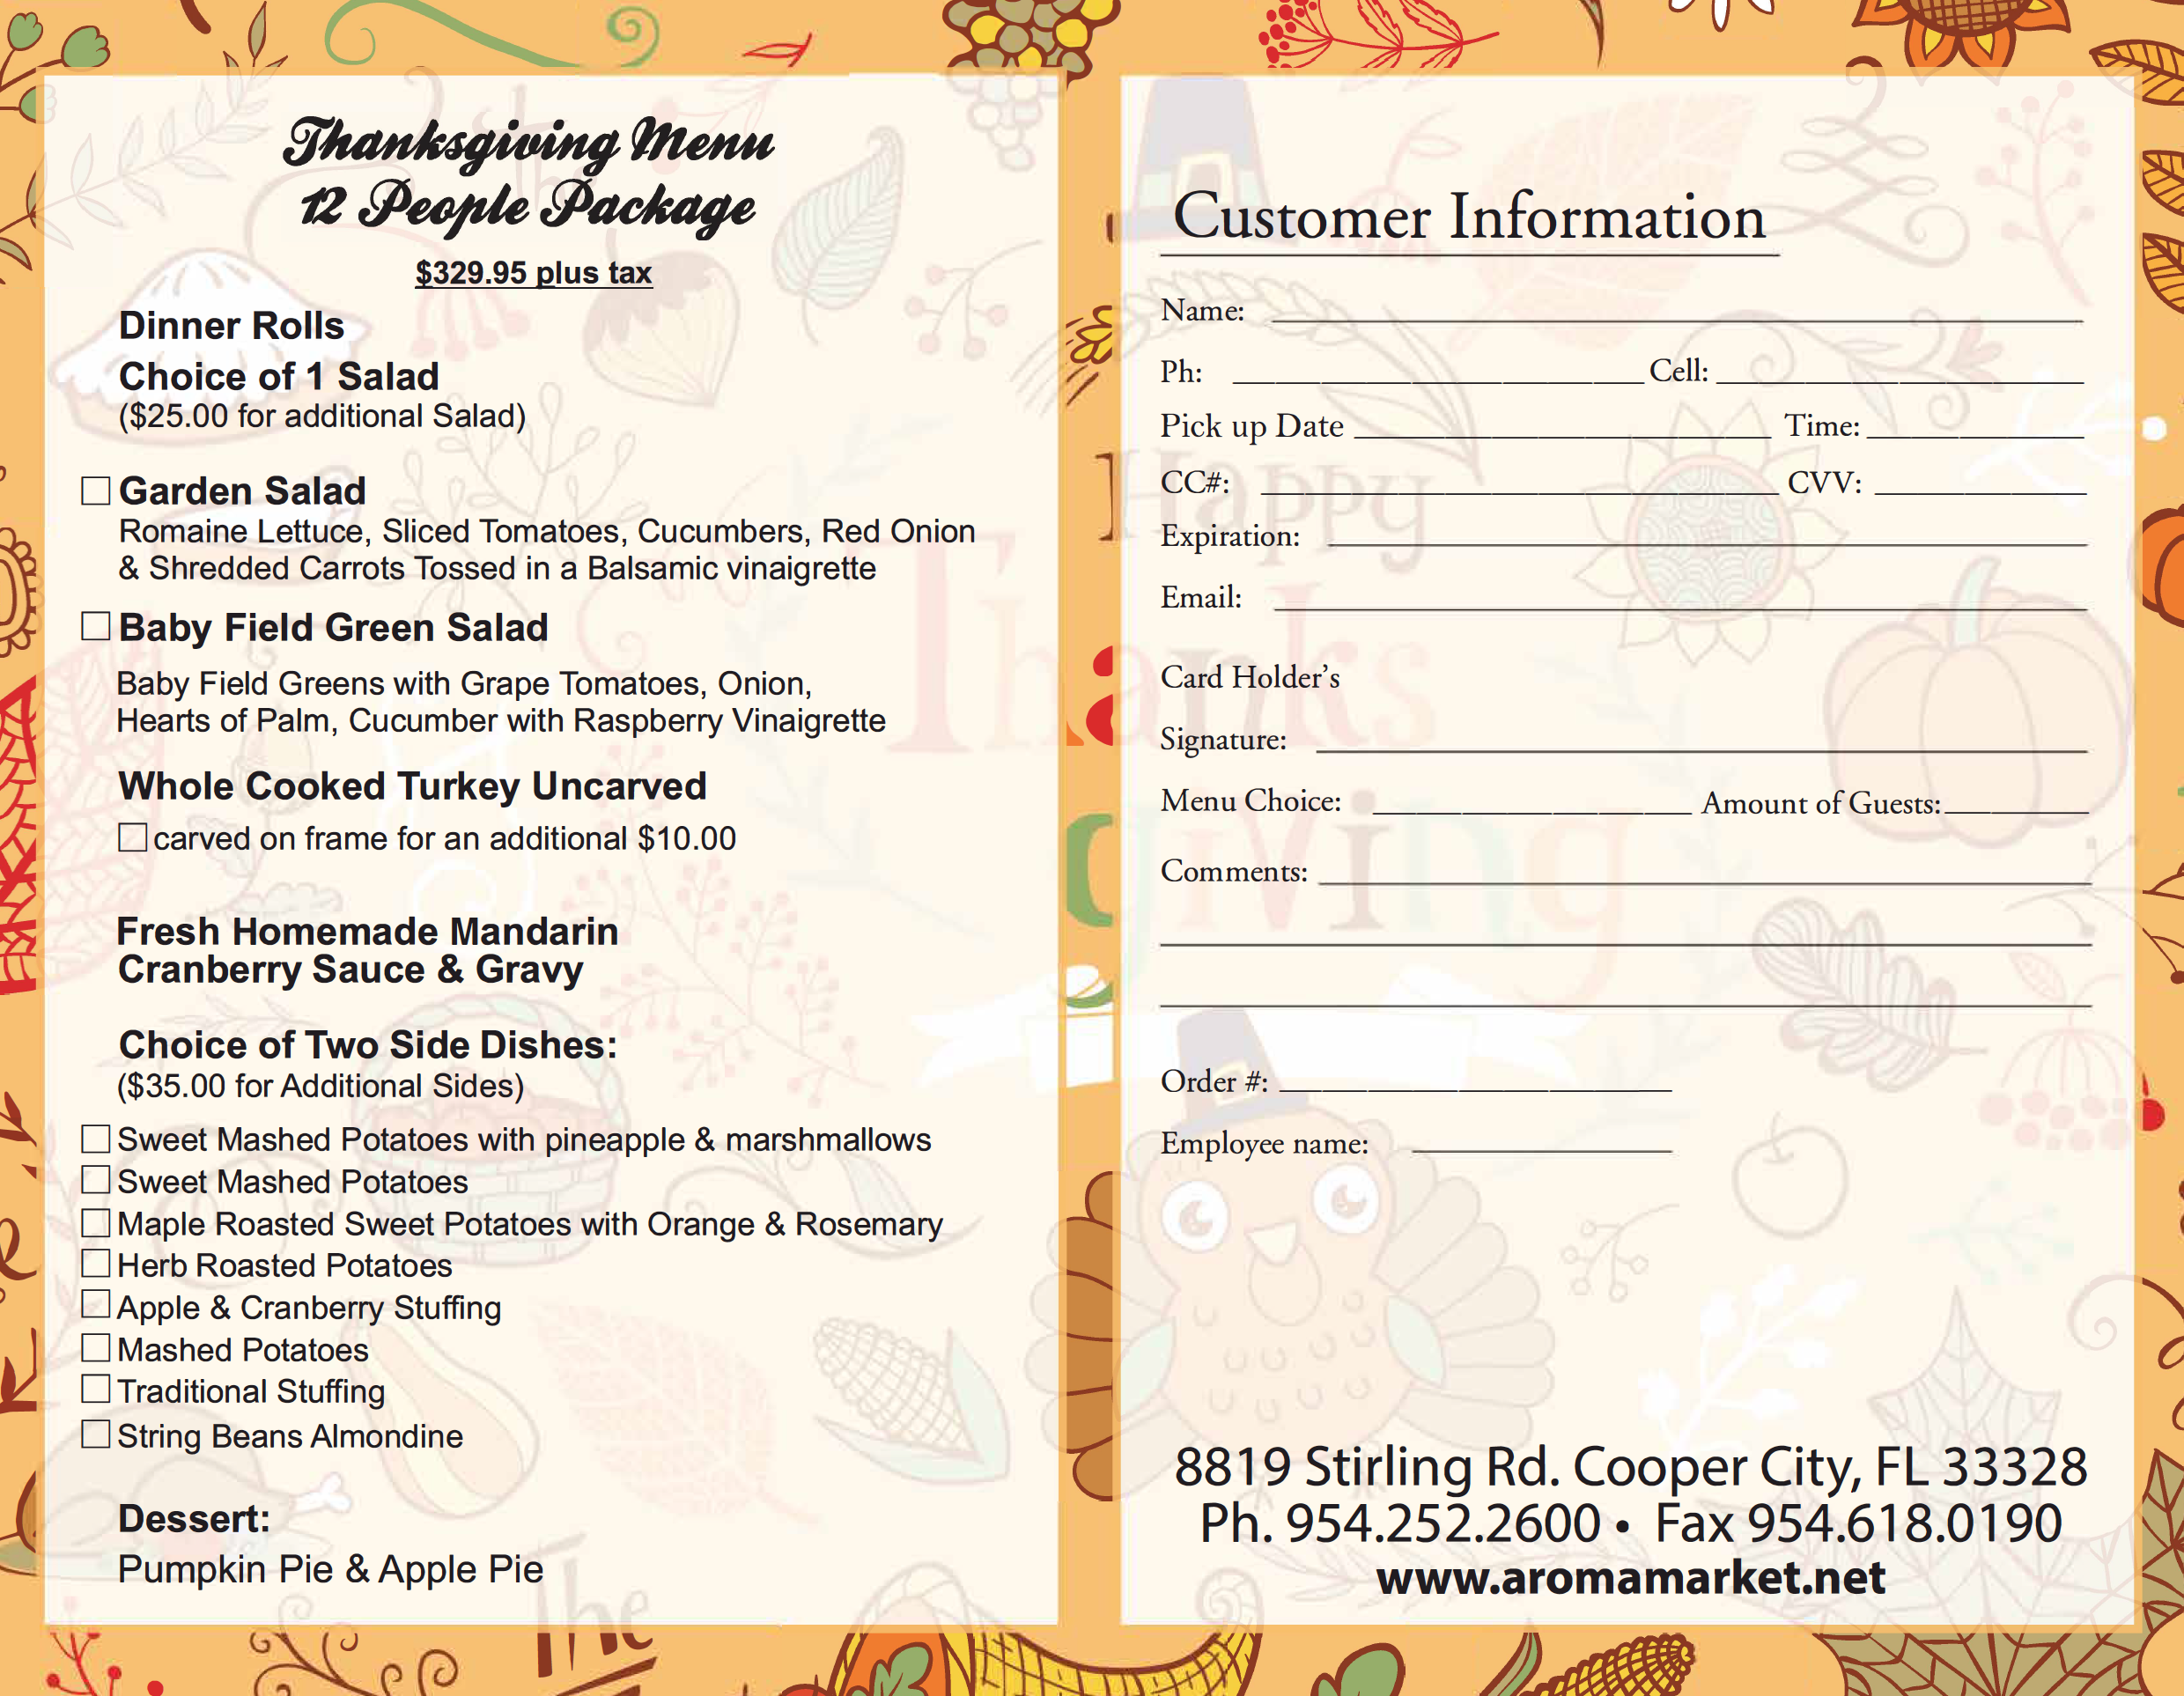 Thanksgiving Menu - Enjoy precious time with family & friends this Thanksgiving, let Aroma cater your Thanksgiving meal.